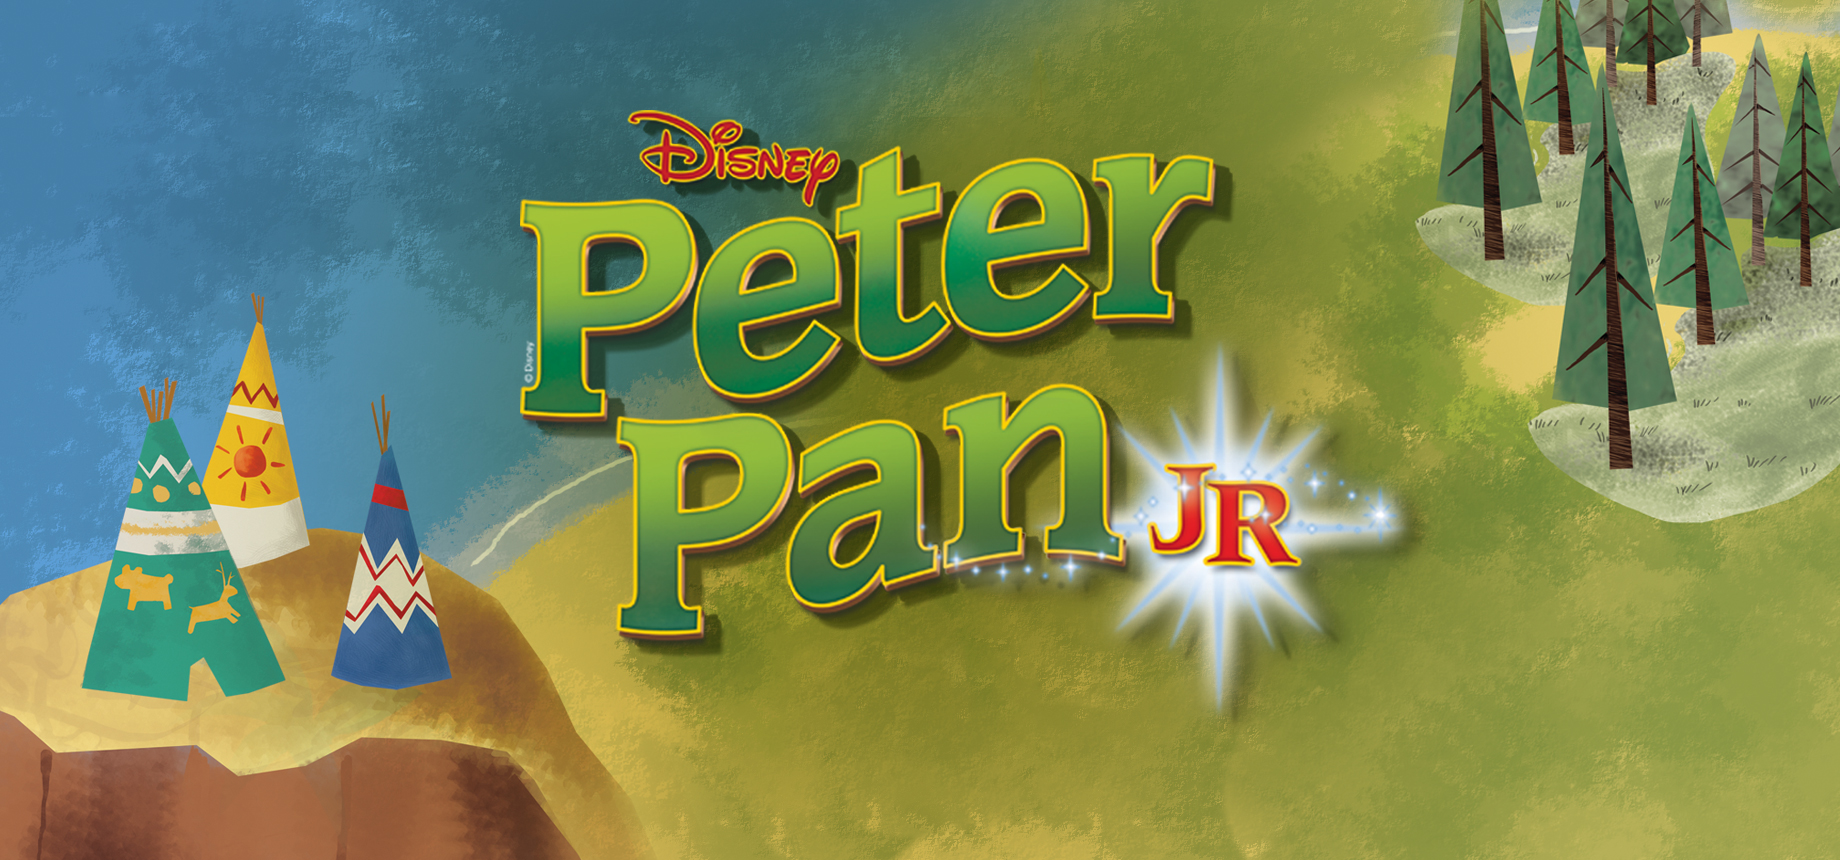 Based on the Disney film and J.M. Barrie's enchanting play,  Disney's Peter Pan JR.  is a modern version of the timeless tale about a boy who wouldn't grow up... with no flying required! The score includes new arrangements of classic Disney songs and a story featuring one rousing adventure after another.  Wendy Darling loves to tell stories to her brothers, Michael and John. But when her father announces she must move out of the nursery, Peter Pan comes to visit the children and whisks them away to Neverland. Their journey introduces them to the Lost Boys, Mermaids, Indians and even the infamous pirate, Captain Hook!  It's Peter to the rescue when Wendy is taken captive by the dreaded captain, who has his own sinister plans in mind for our hero.   Disney's Peter Pan JR.  is a magical story with countless opportunities for clever staging and design, and large ensemble numbers featuring cliques of classic characters.